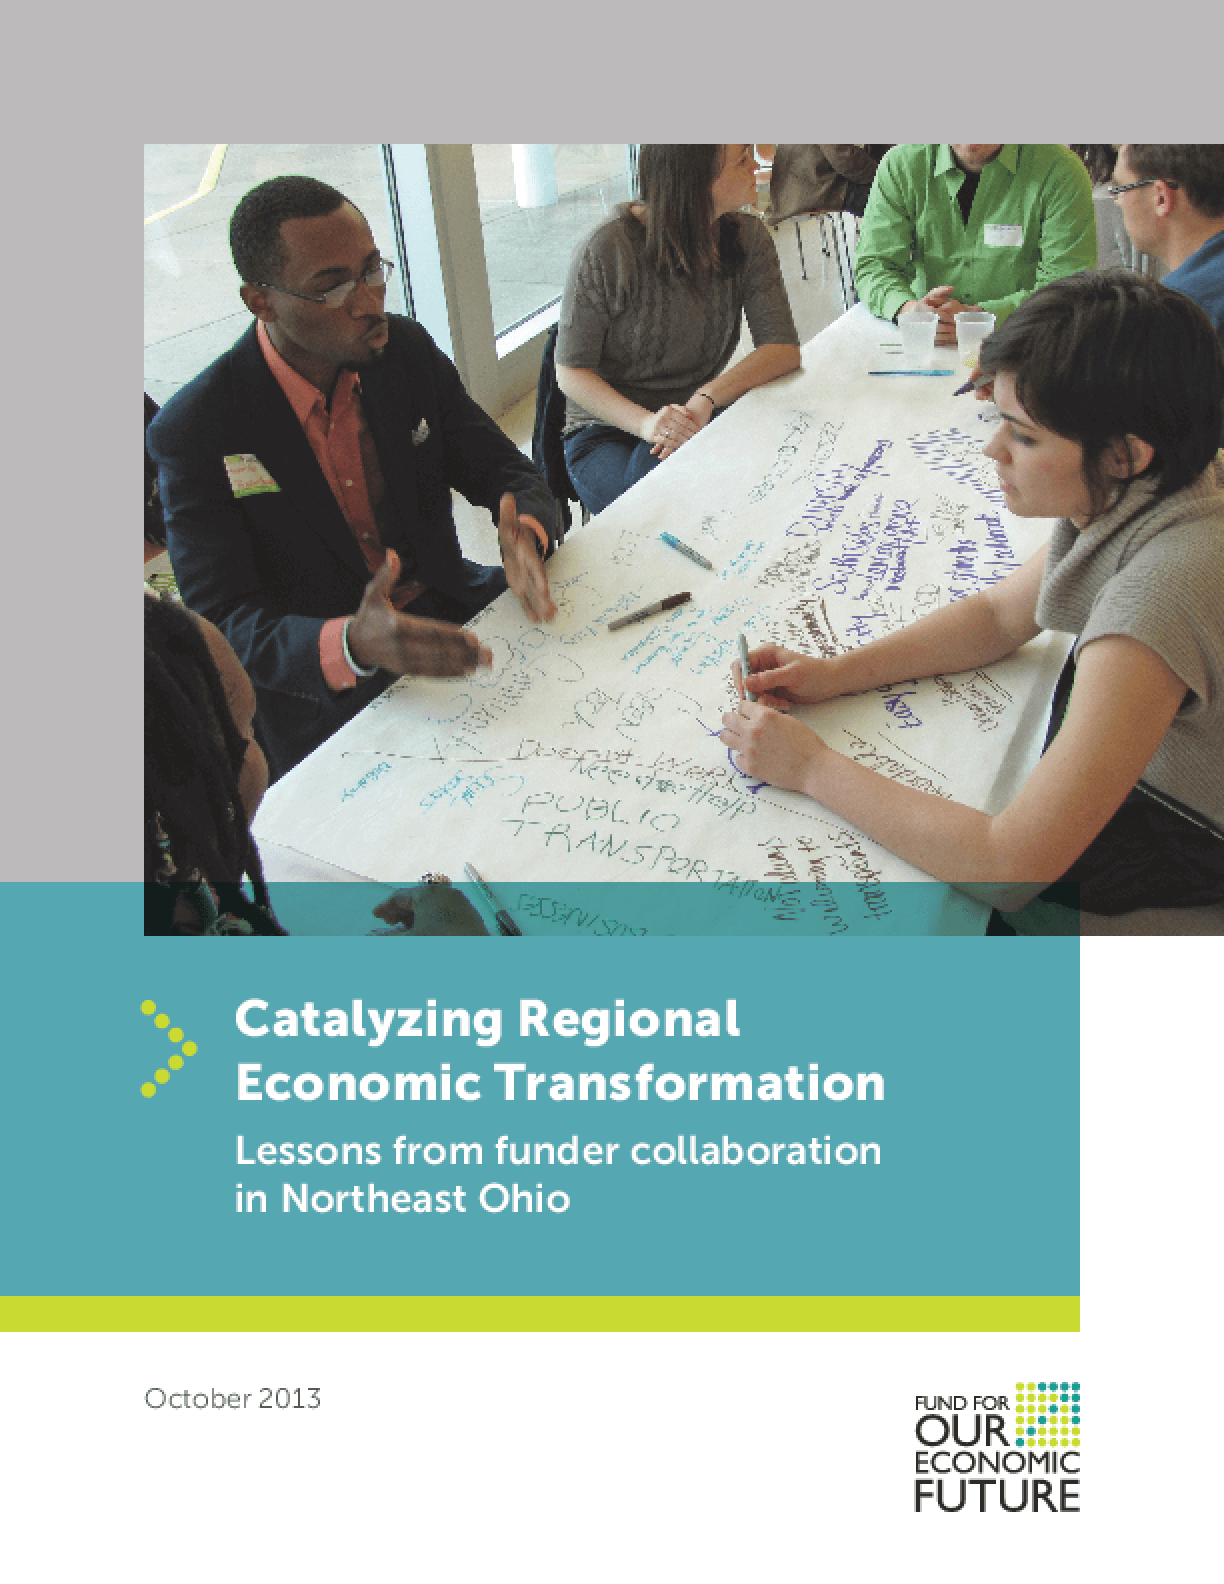 Catalyzing Regional Economic Transformation: Lessons from Funder Collaboration in Northeast Ohio